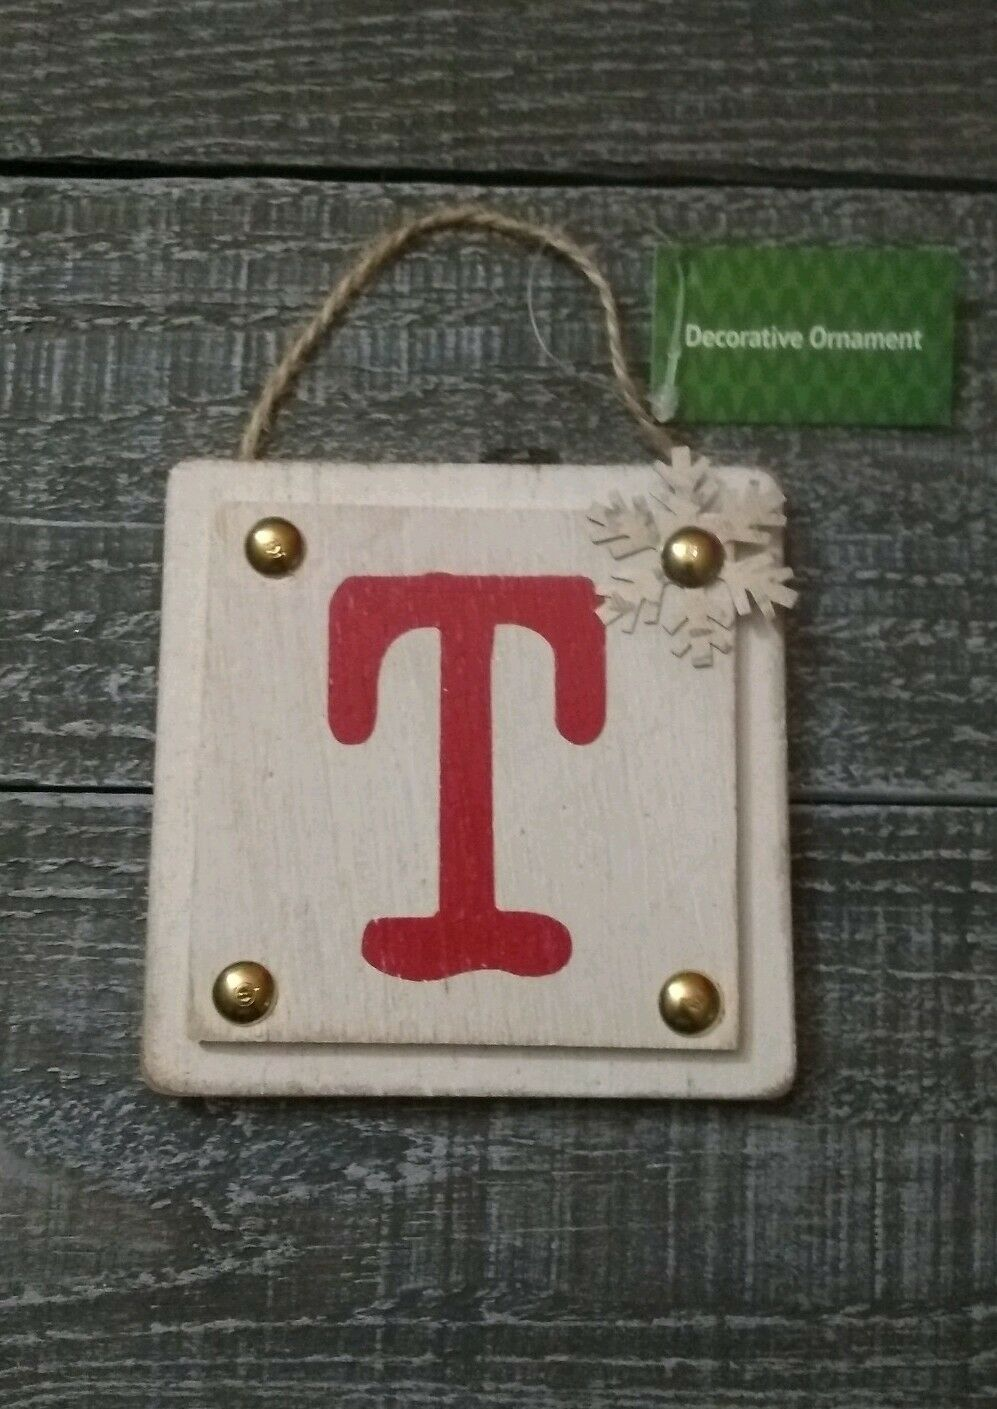 Wooden Monogram Letter T Wall Sign Hanging Twine Decor Ornament New - $14.00